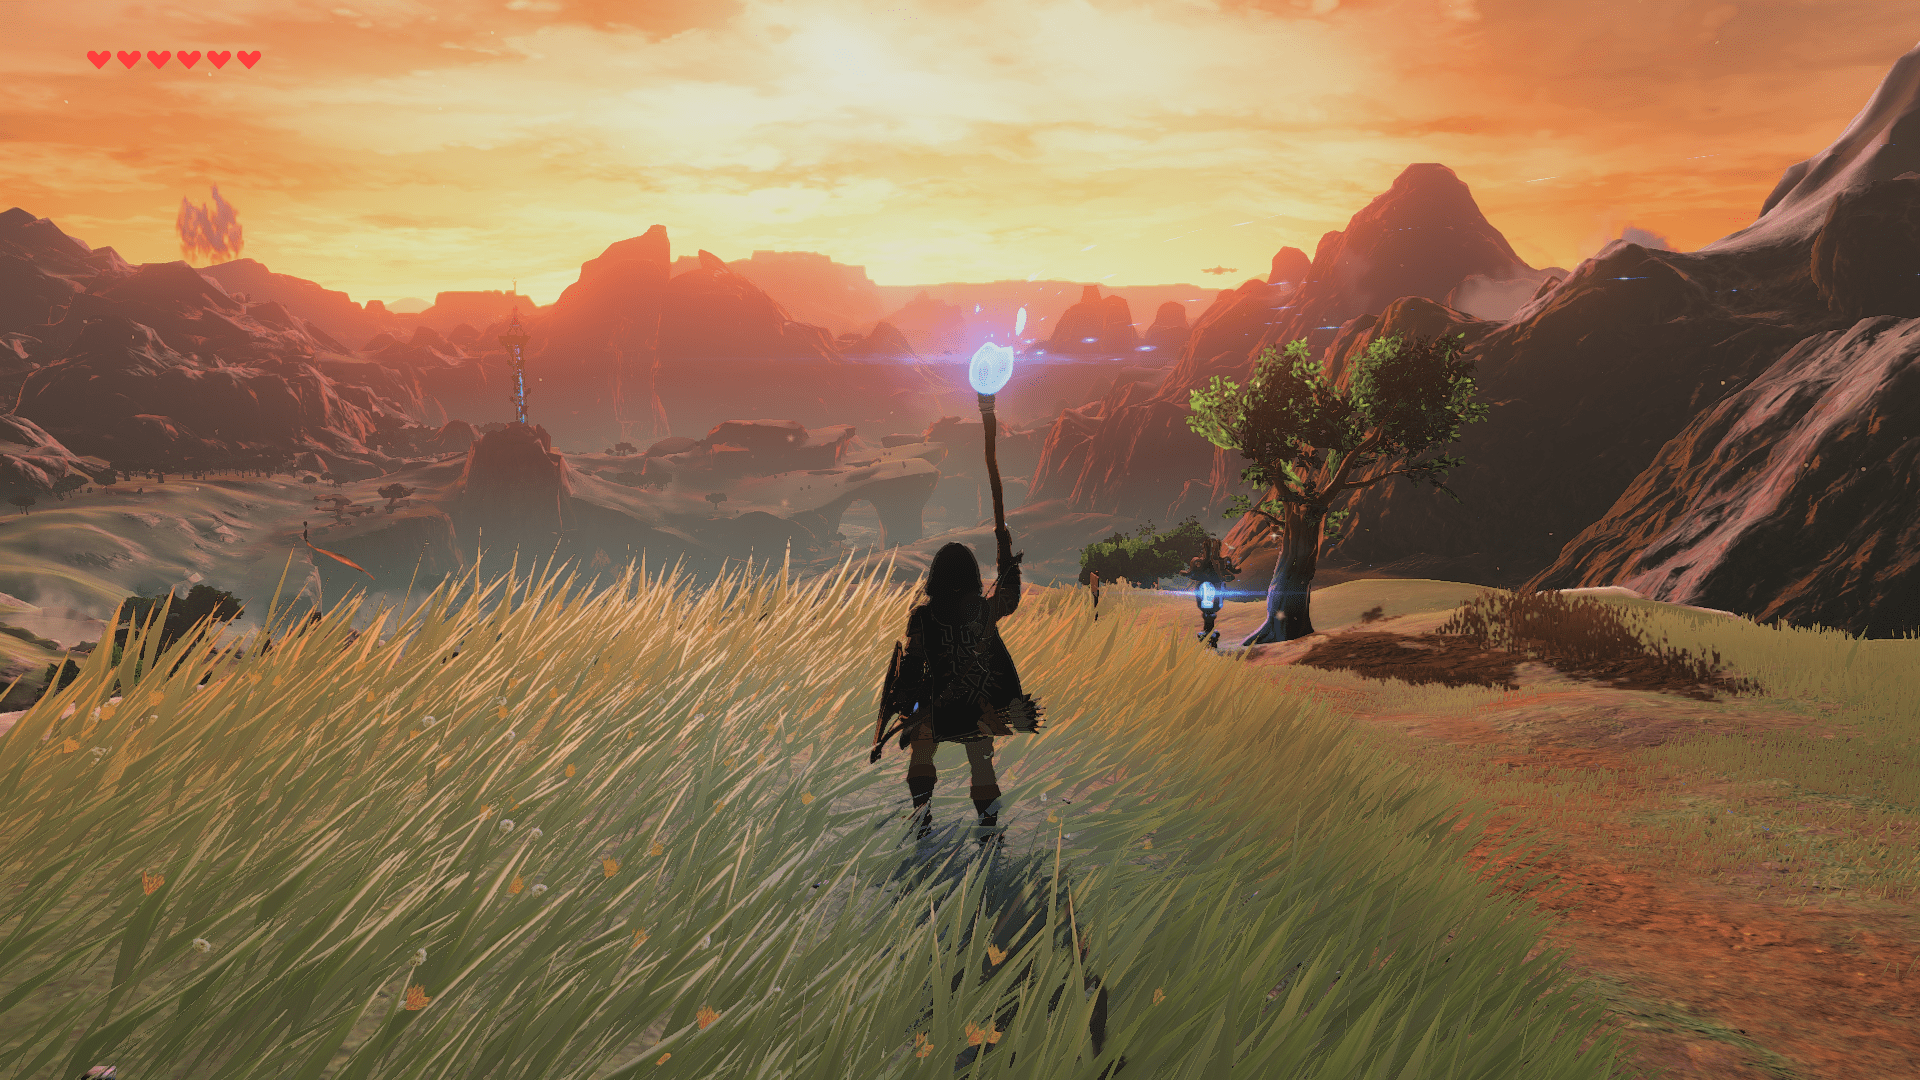 Zelda running on CEMUearlier version - Download CEMU 1.15.4 for PC: Bugs Fixes, Better Controller Support and Improved Performance